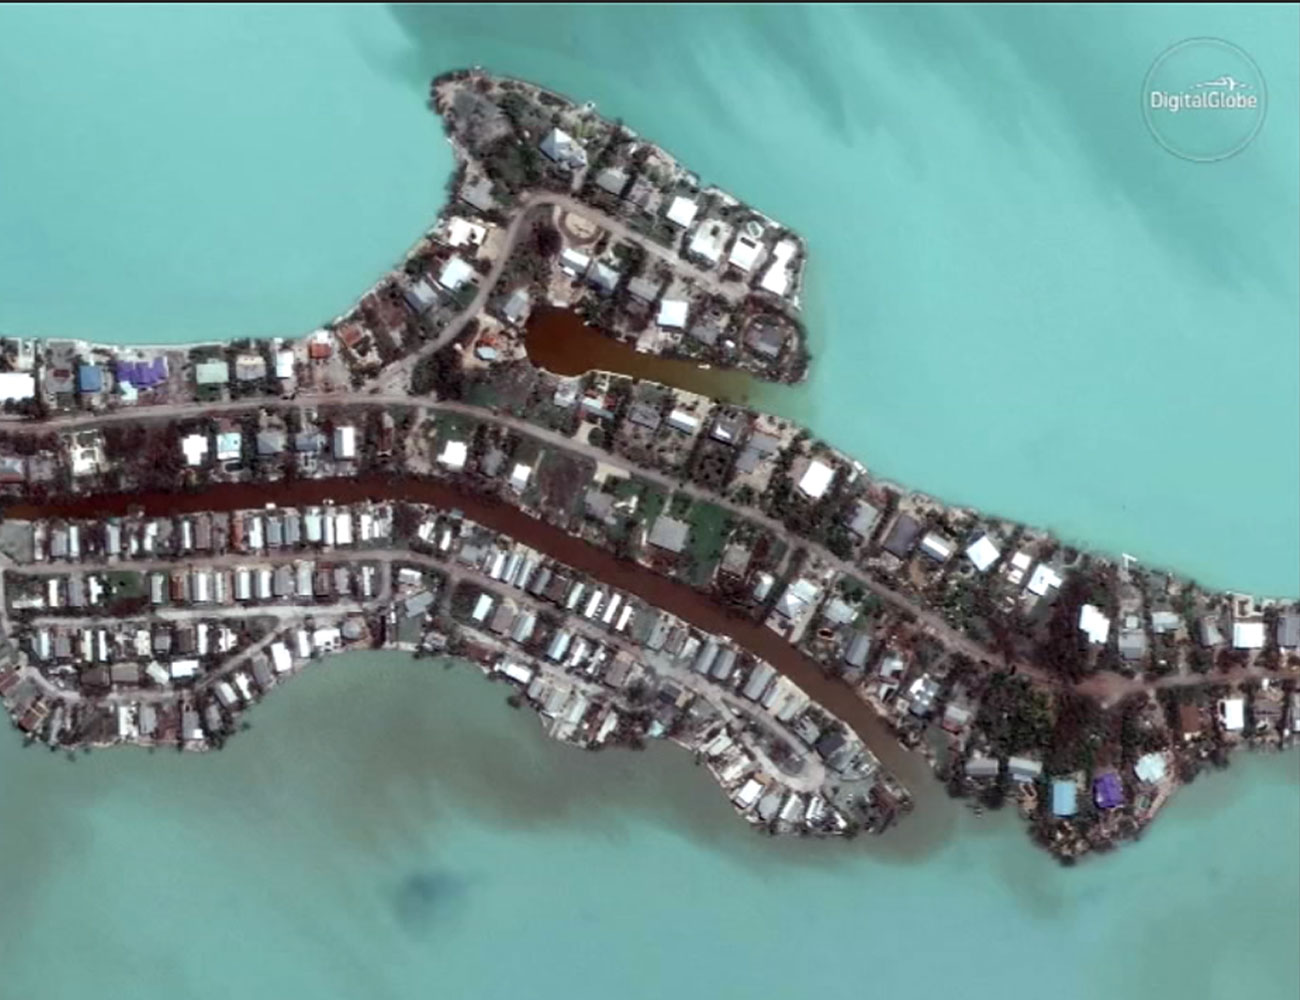 <div class='meta'><div class='origin-logo' data-origin='none'></div><span class='caption-text' data-credit='DigitalGlobe'>Key West, Florida - Sept. 11, 2017</span></div>